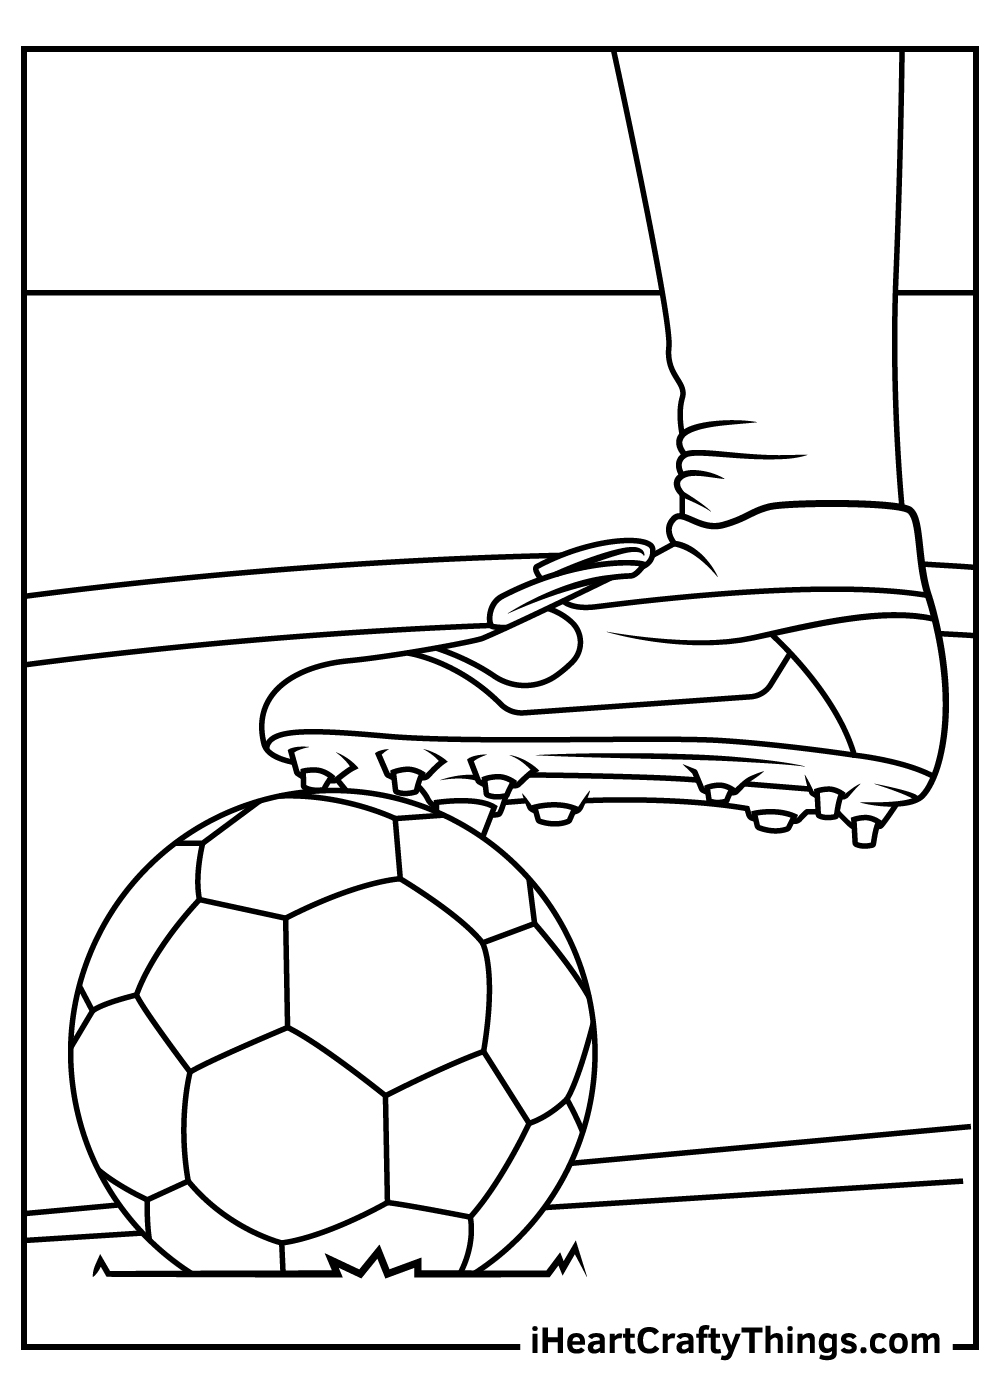 Printable Soccer Coloring Pages Updated 2021